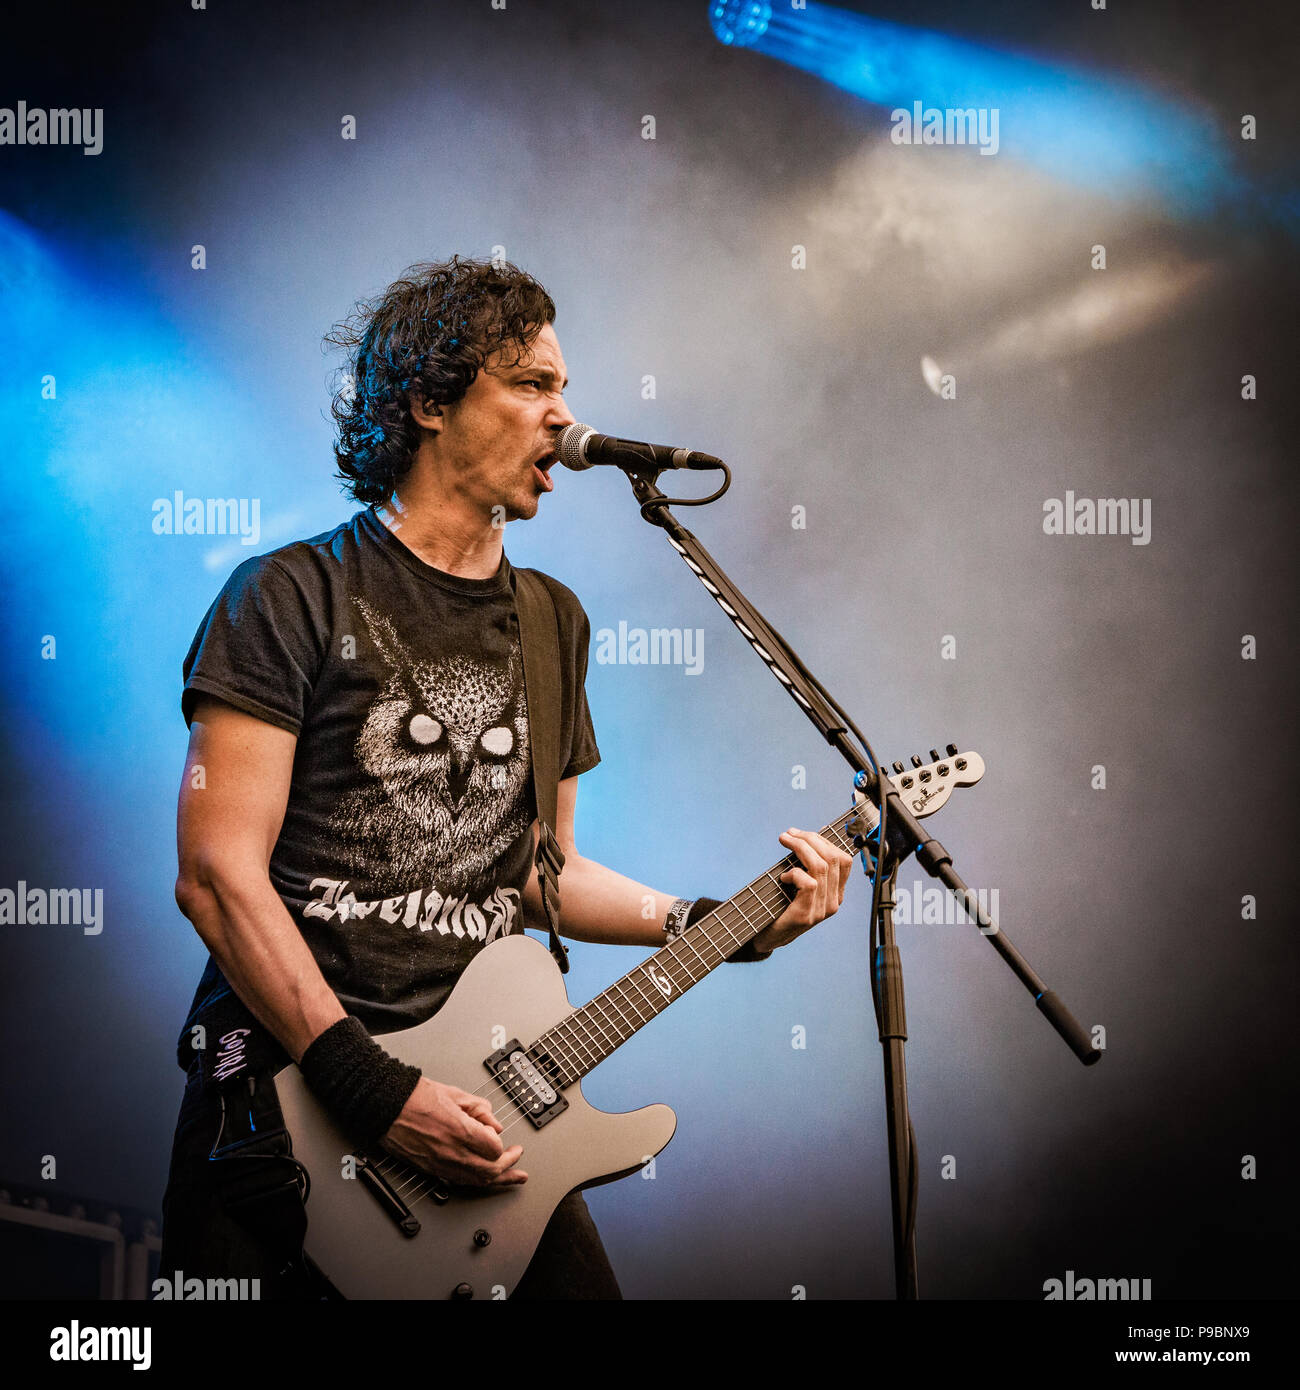 French heavy metal band Gojira on stage at the 2015 Copenhell Metal festival. Here singer and guitarist Joe Duplantier - Stock Image